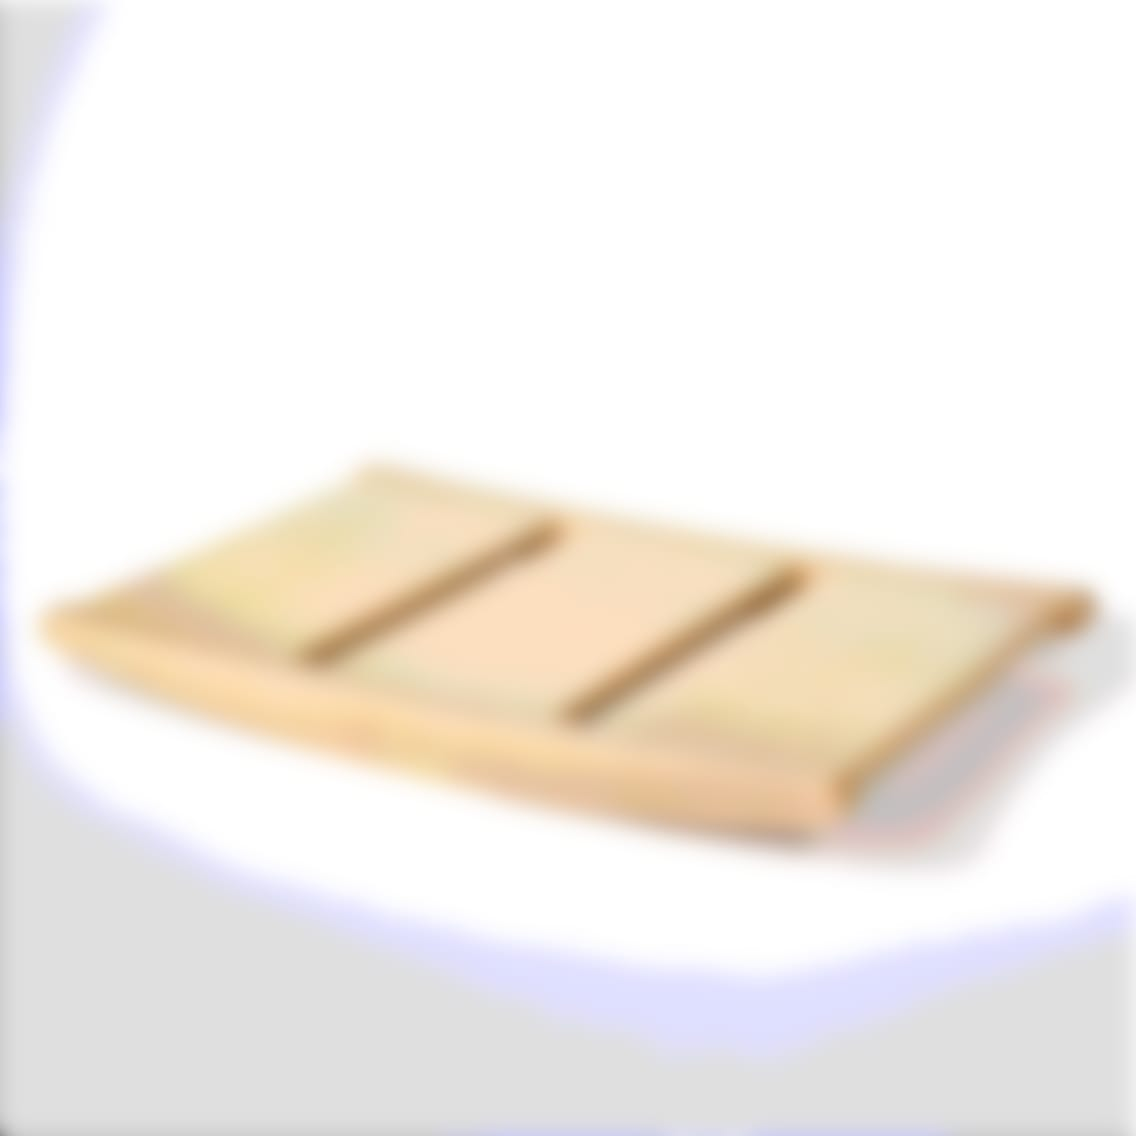 fully tic toc stand balance board natural diagonal view